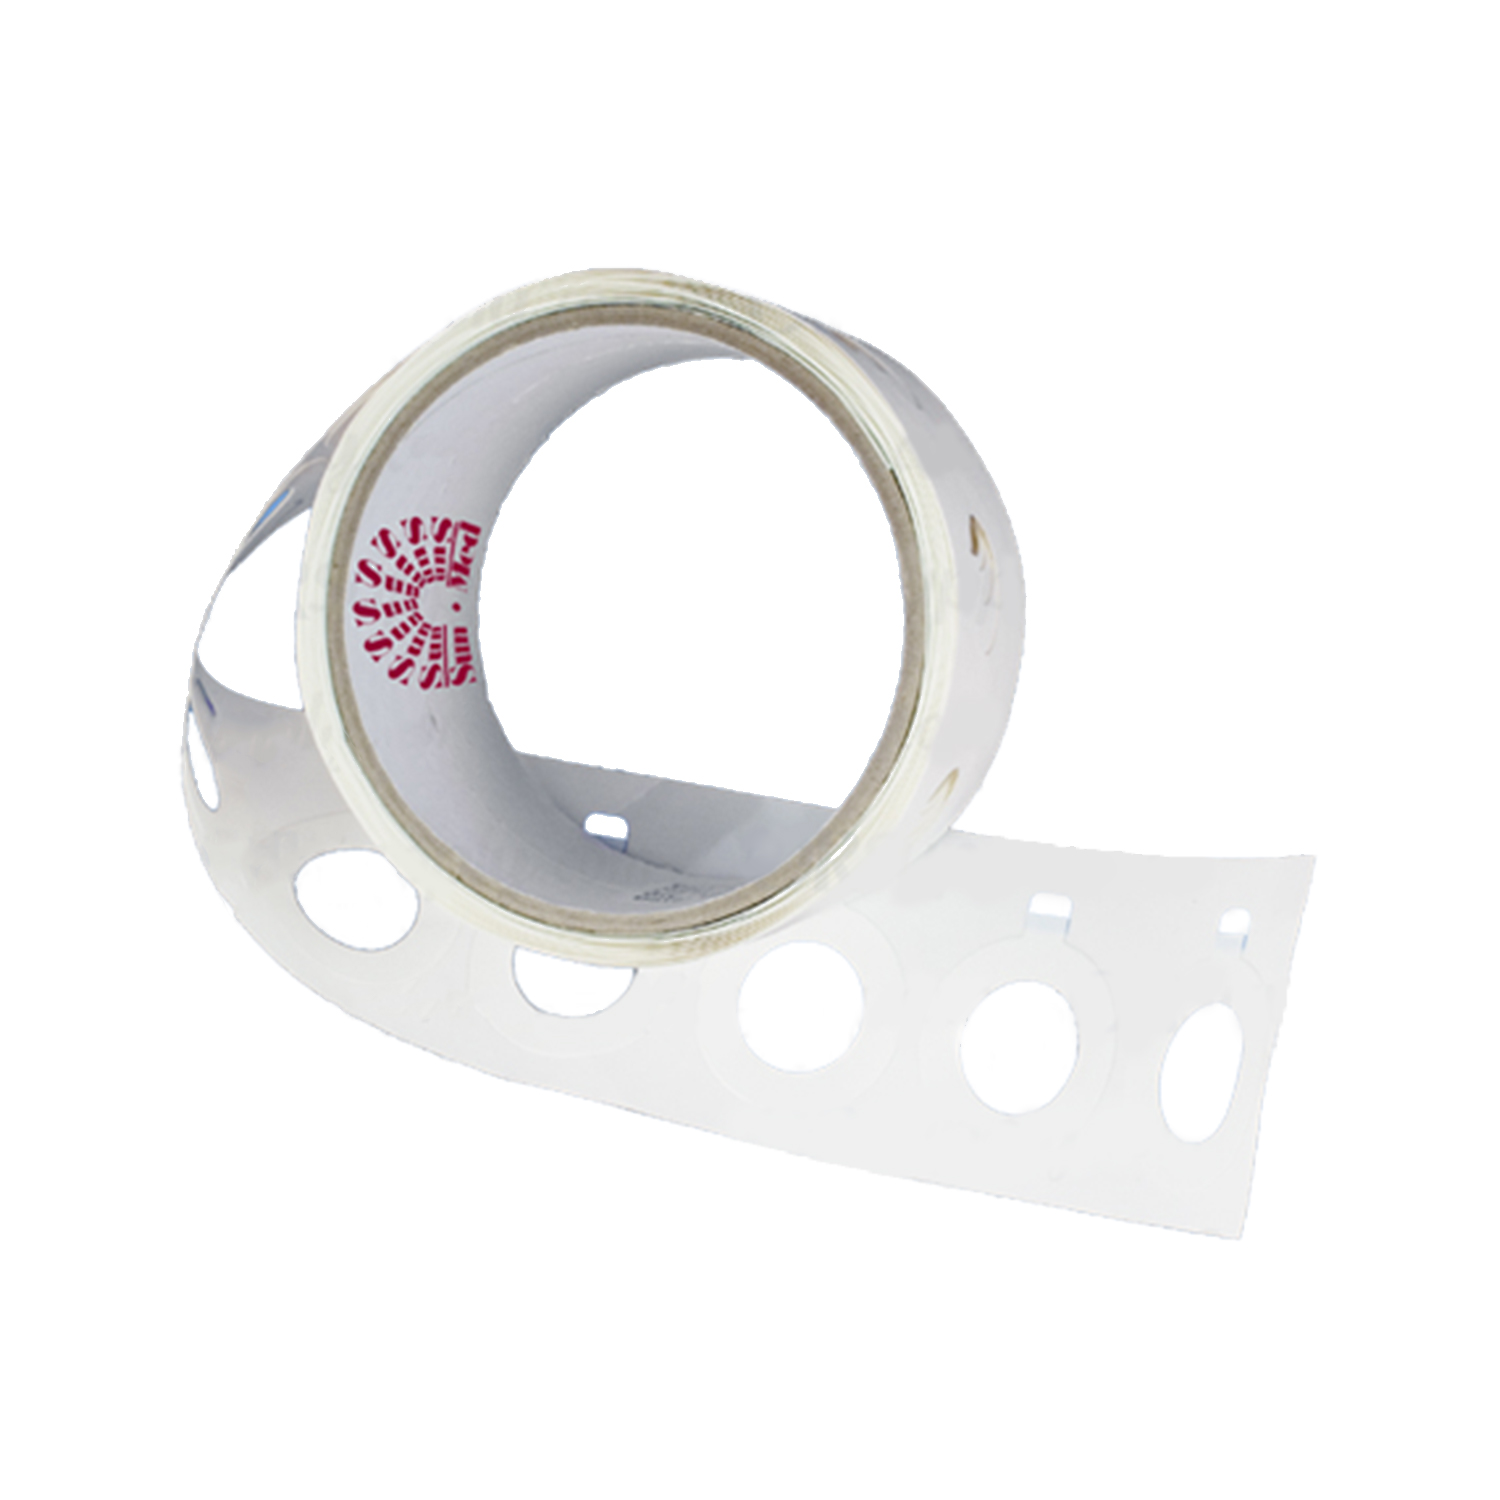 Sun-Med Double Adhesive Disks for Chest Pieces